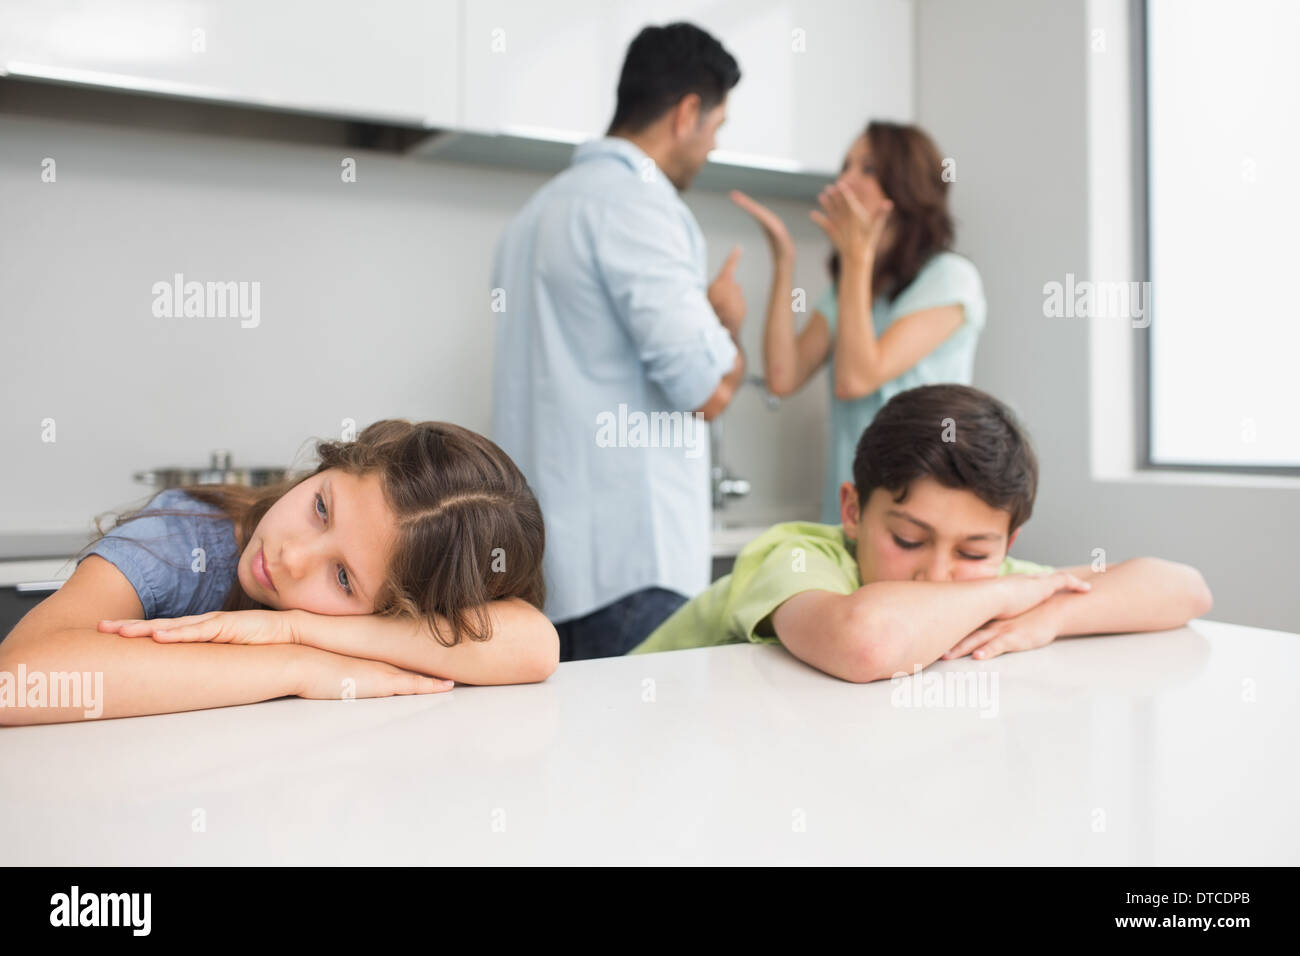 Sad young kids while parents quarreling in kitchen - Stock Image